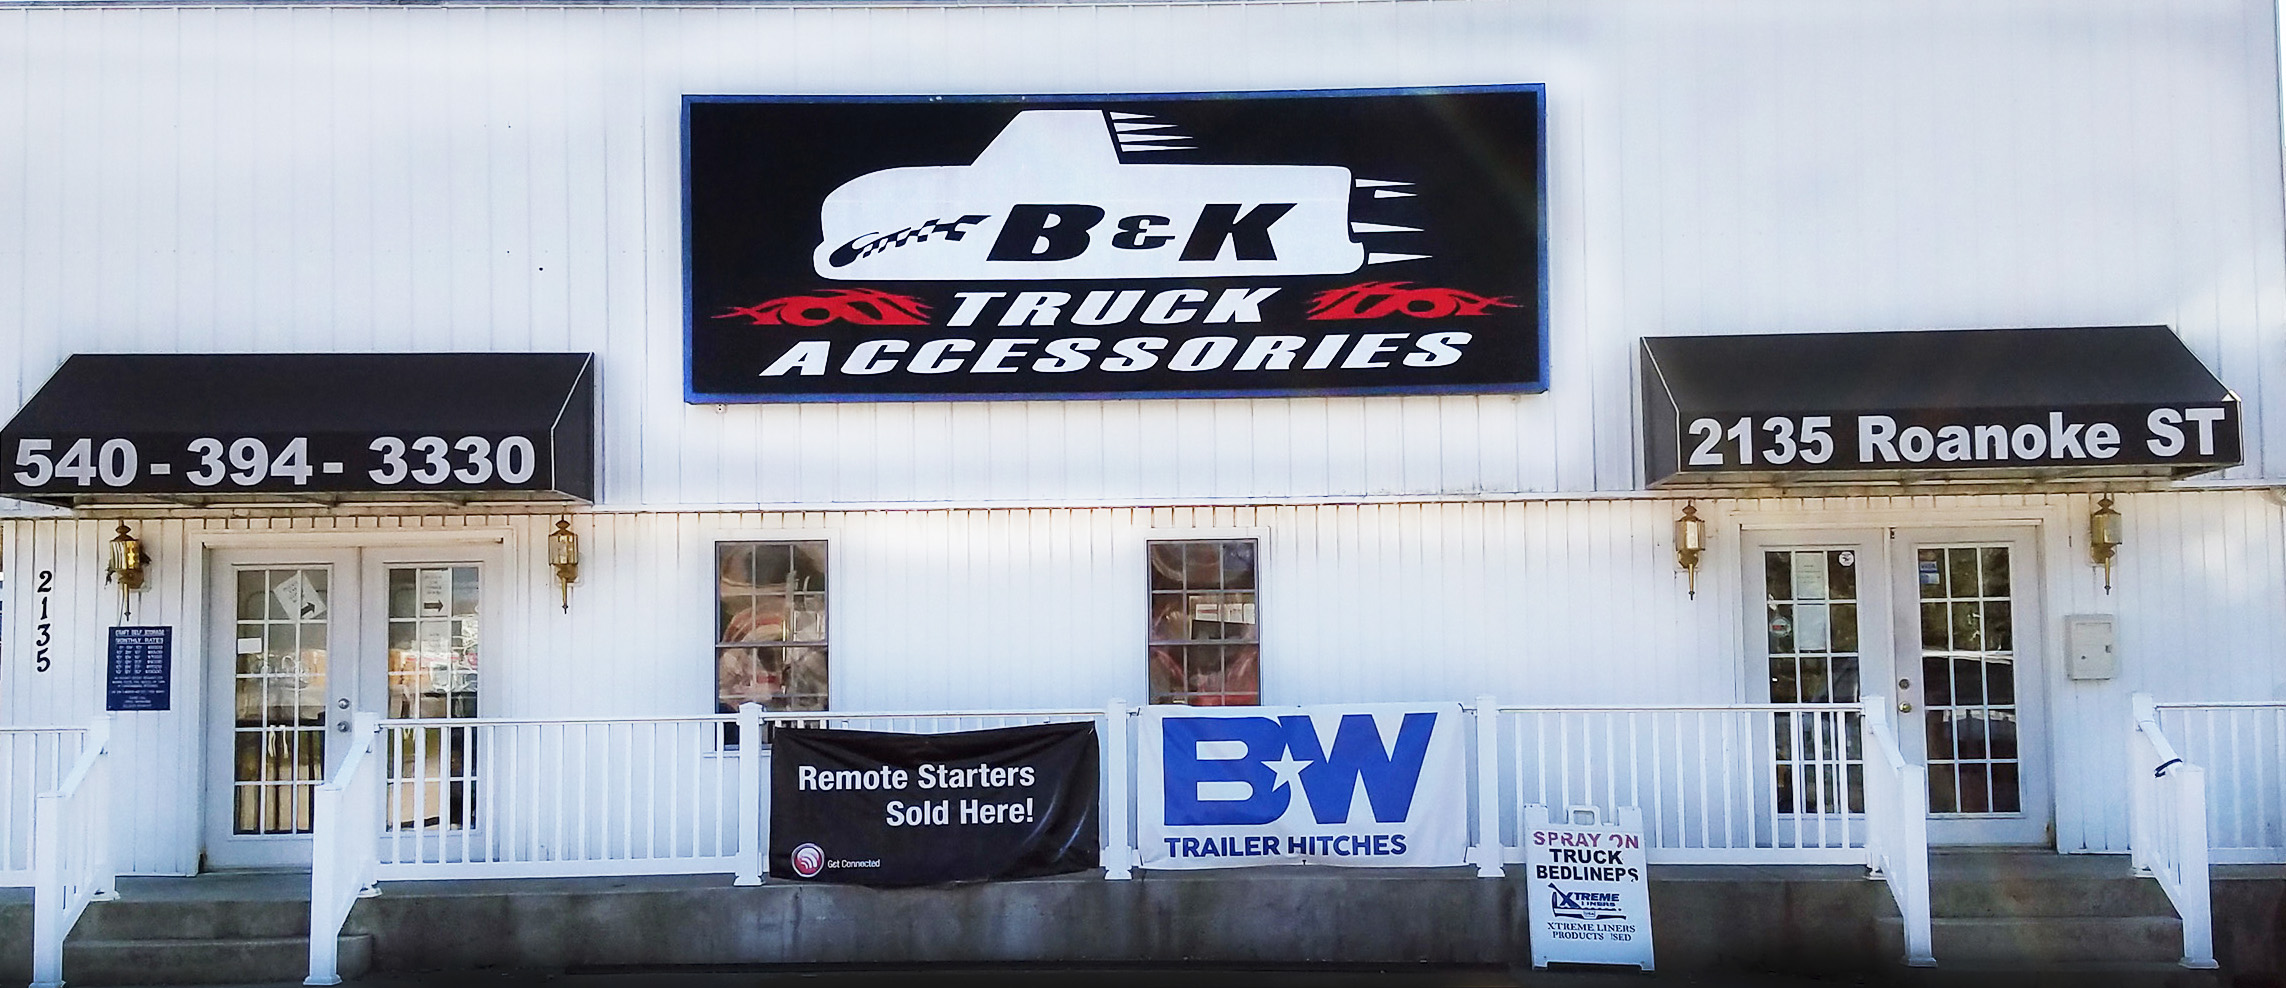 B&K Truck Accessories Christiansburg, VA near Blacksburg, VA Virginia Tech